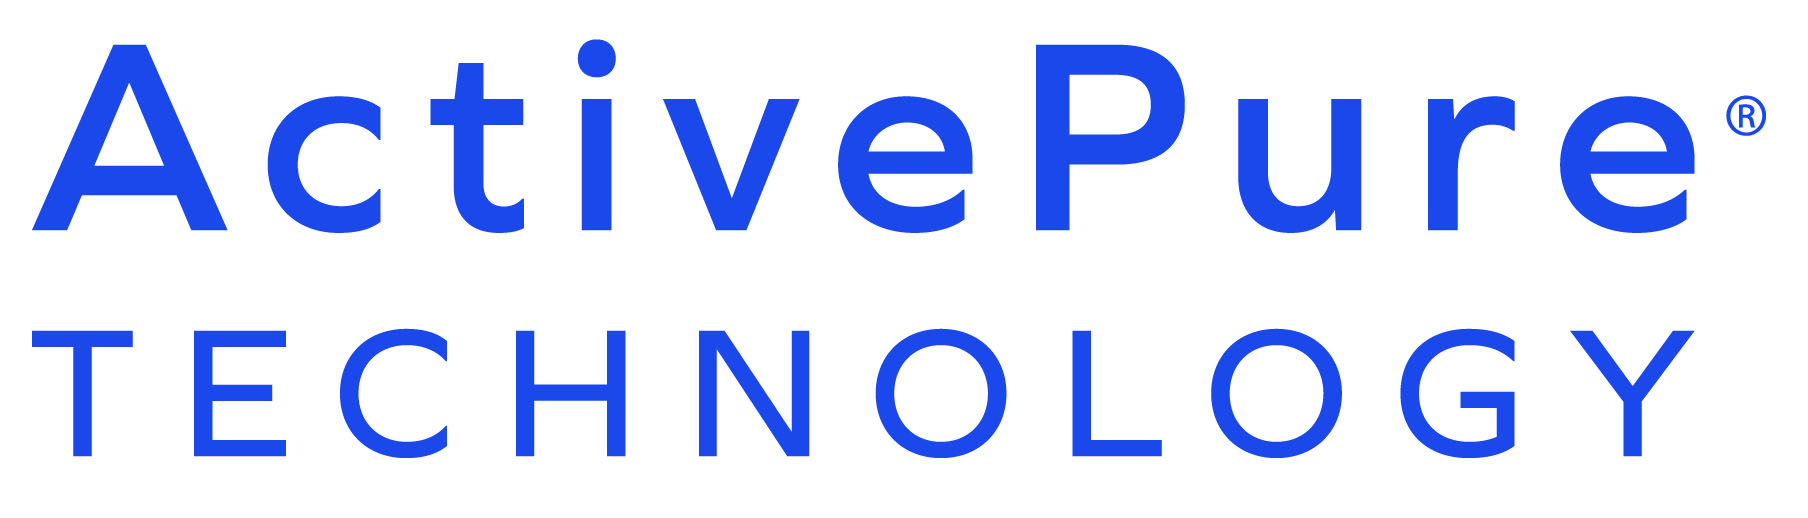 LG_AP_NEW_ActivePureLogo_FINAL